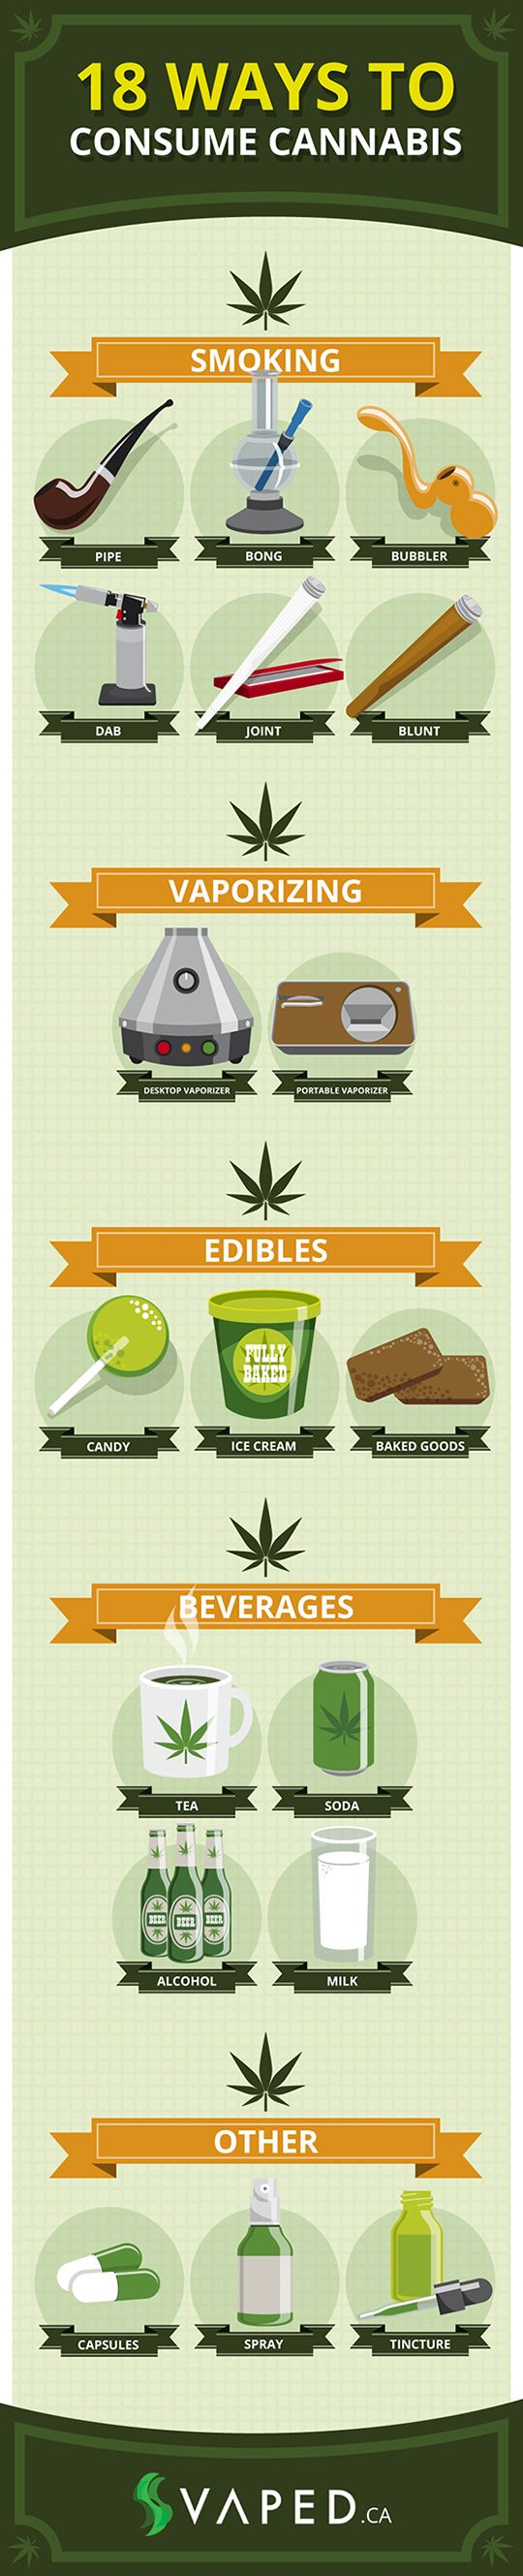 18 Ways to Consume Cannabis [Infographic]